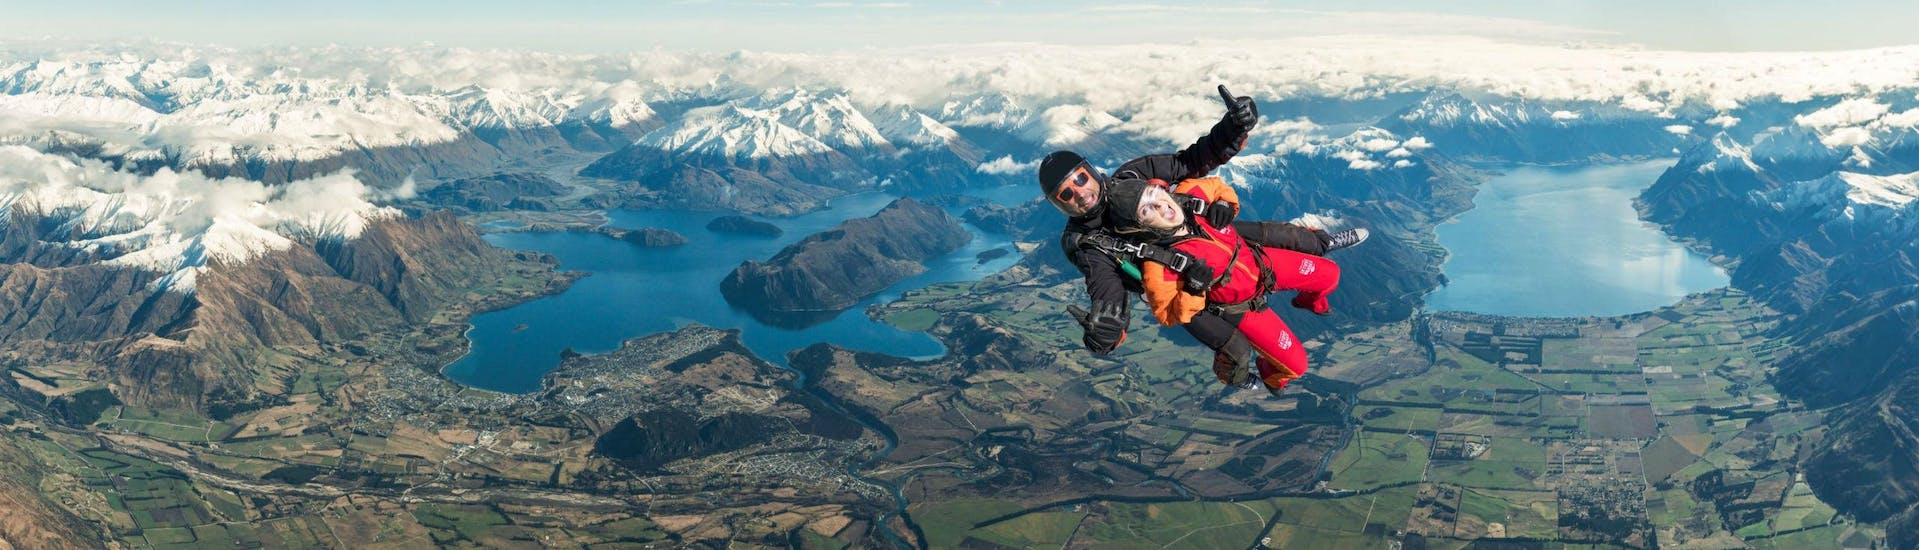 A tandem master from Skydive Wanaka and his passenger are in the middle of their Tandem Skydive in Wanaka - 15,000ft, above the spectacular mountainscape around Lake Wanaka.